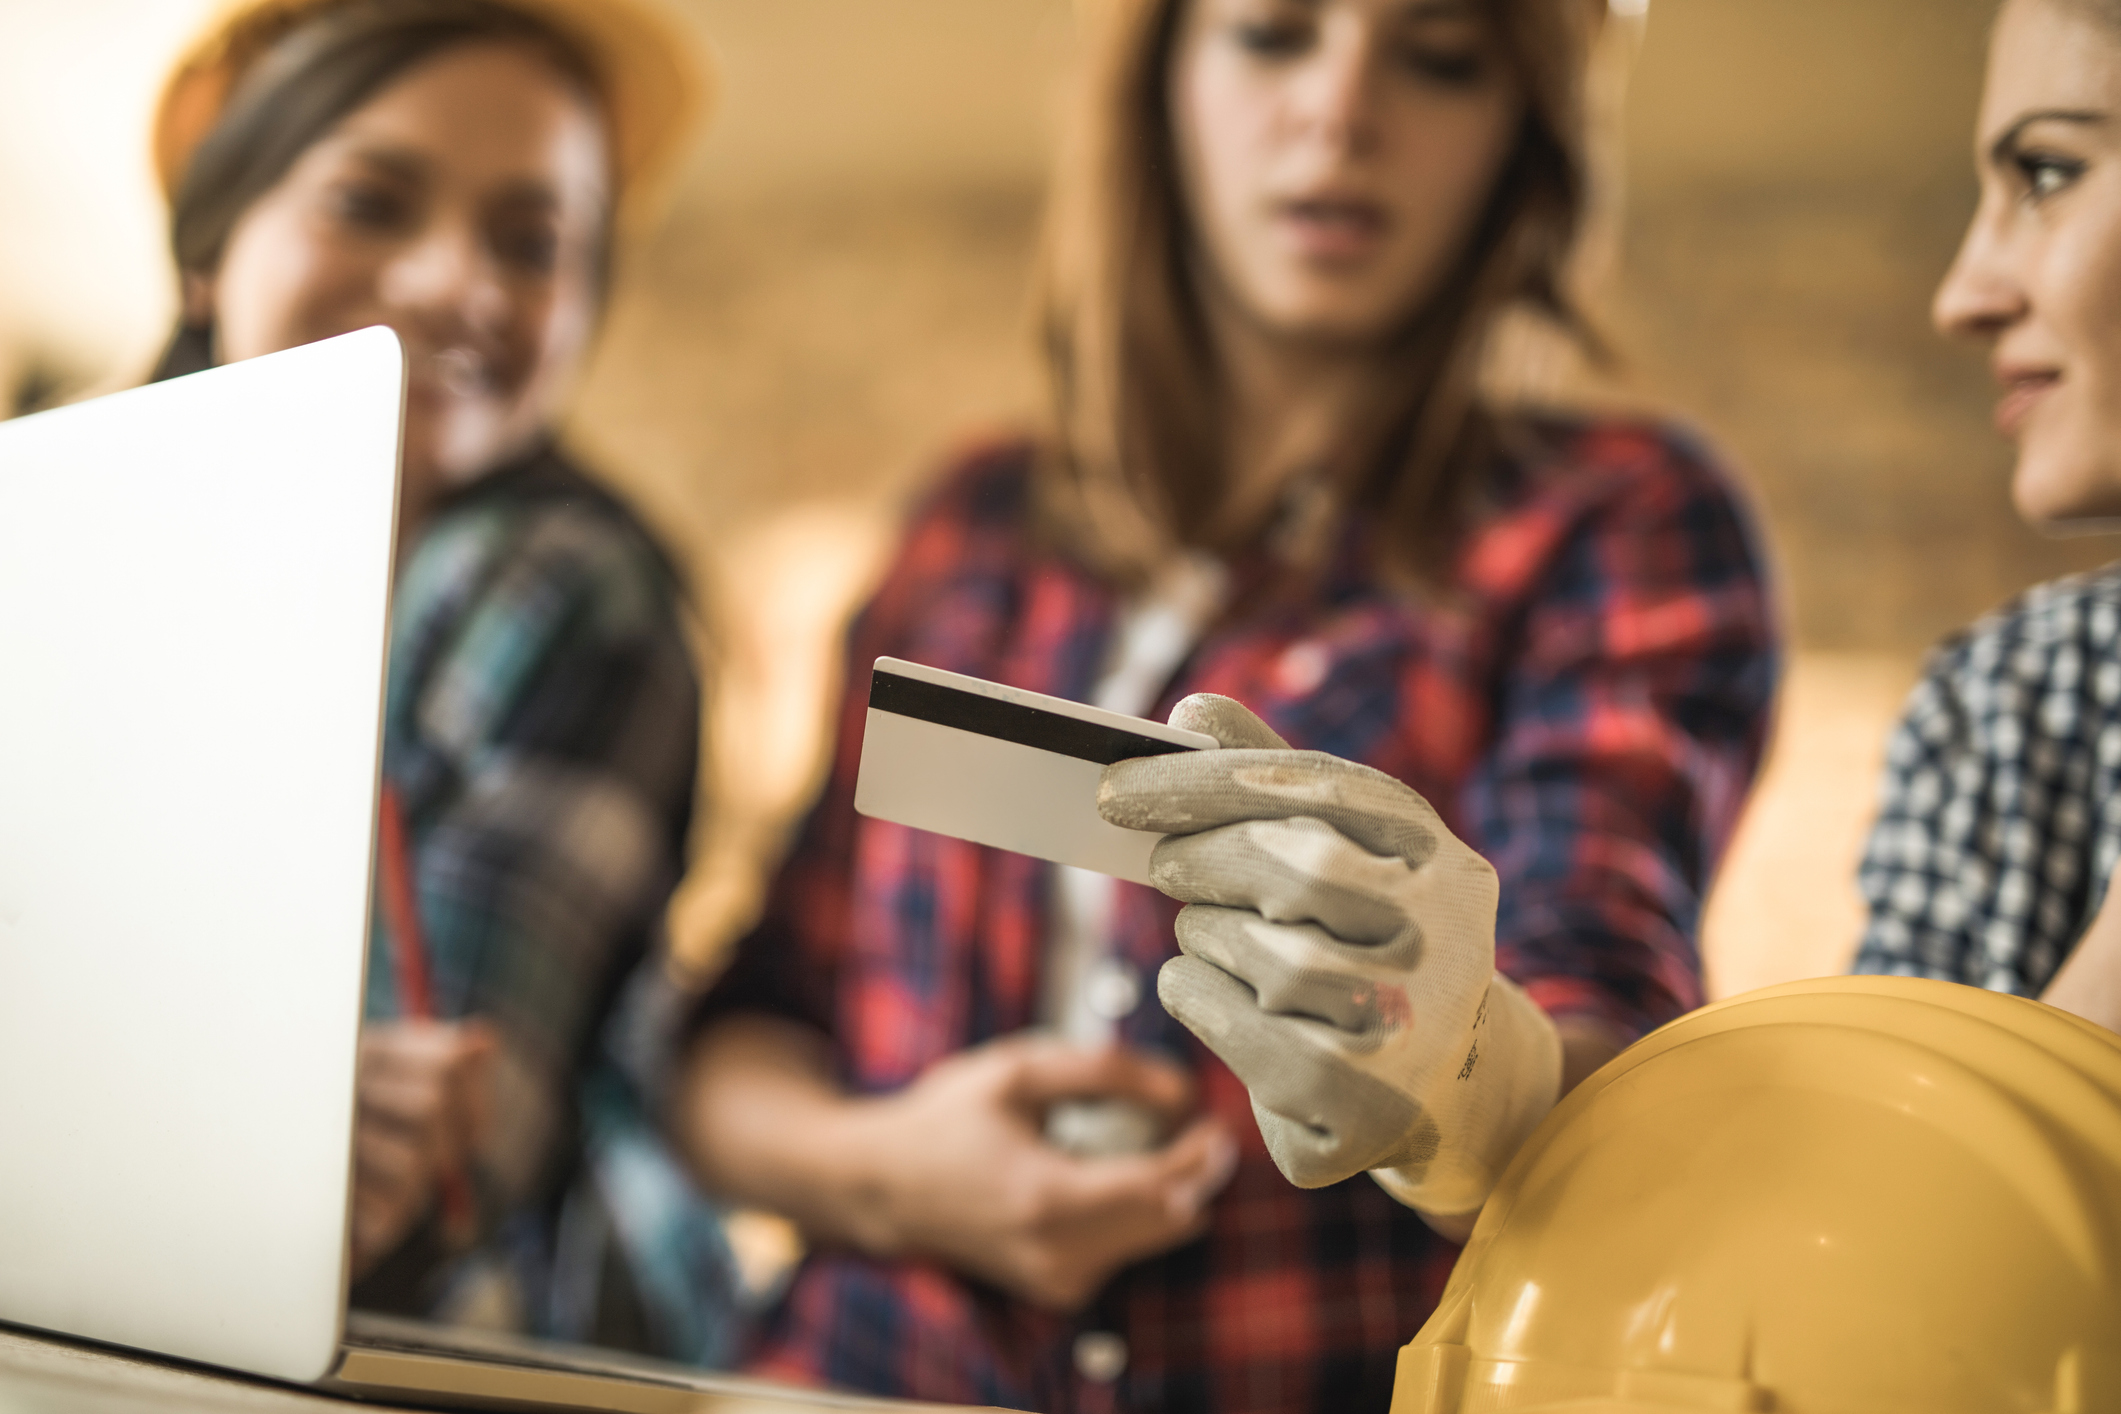 Trio of women in flannels and construction helmets looking at a credit card.